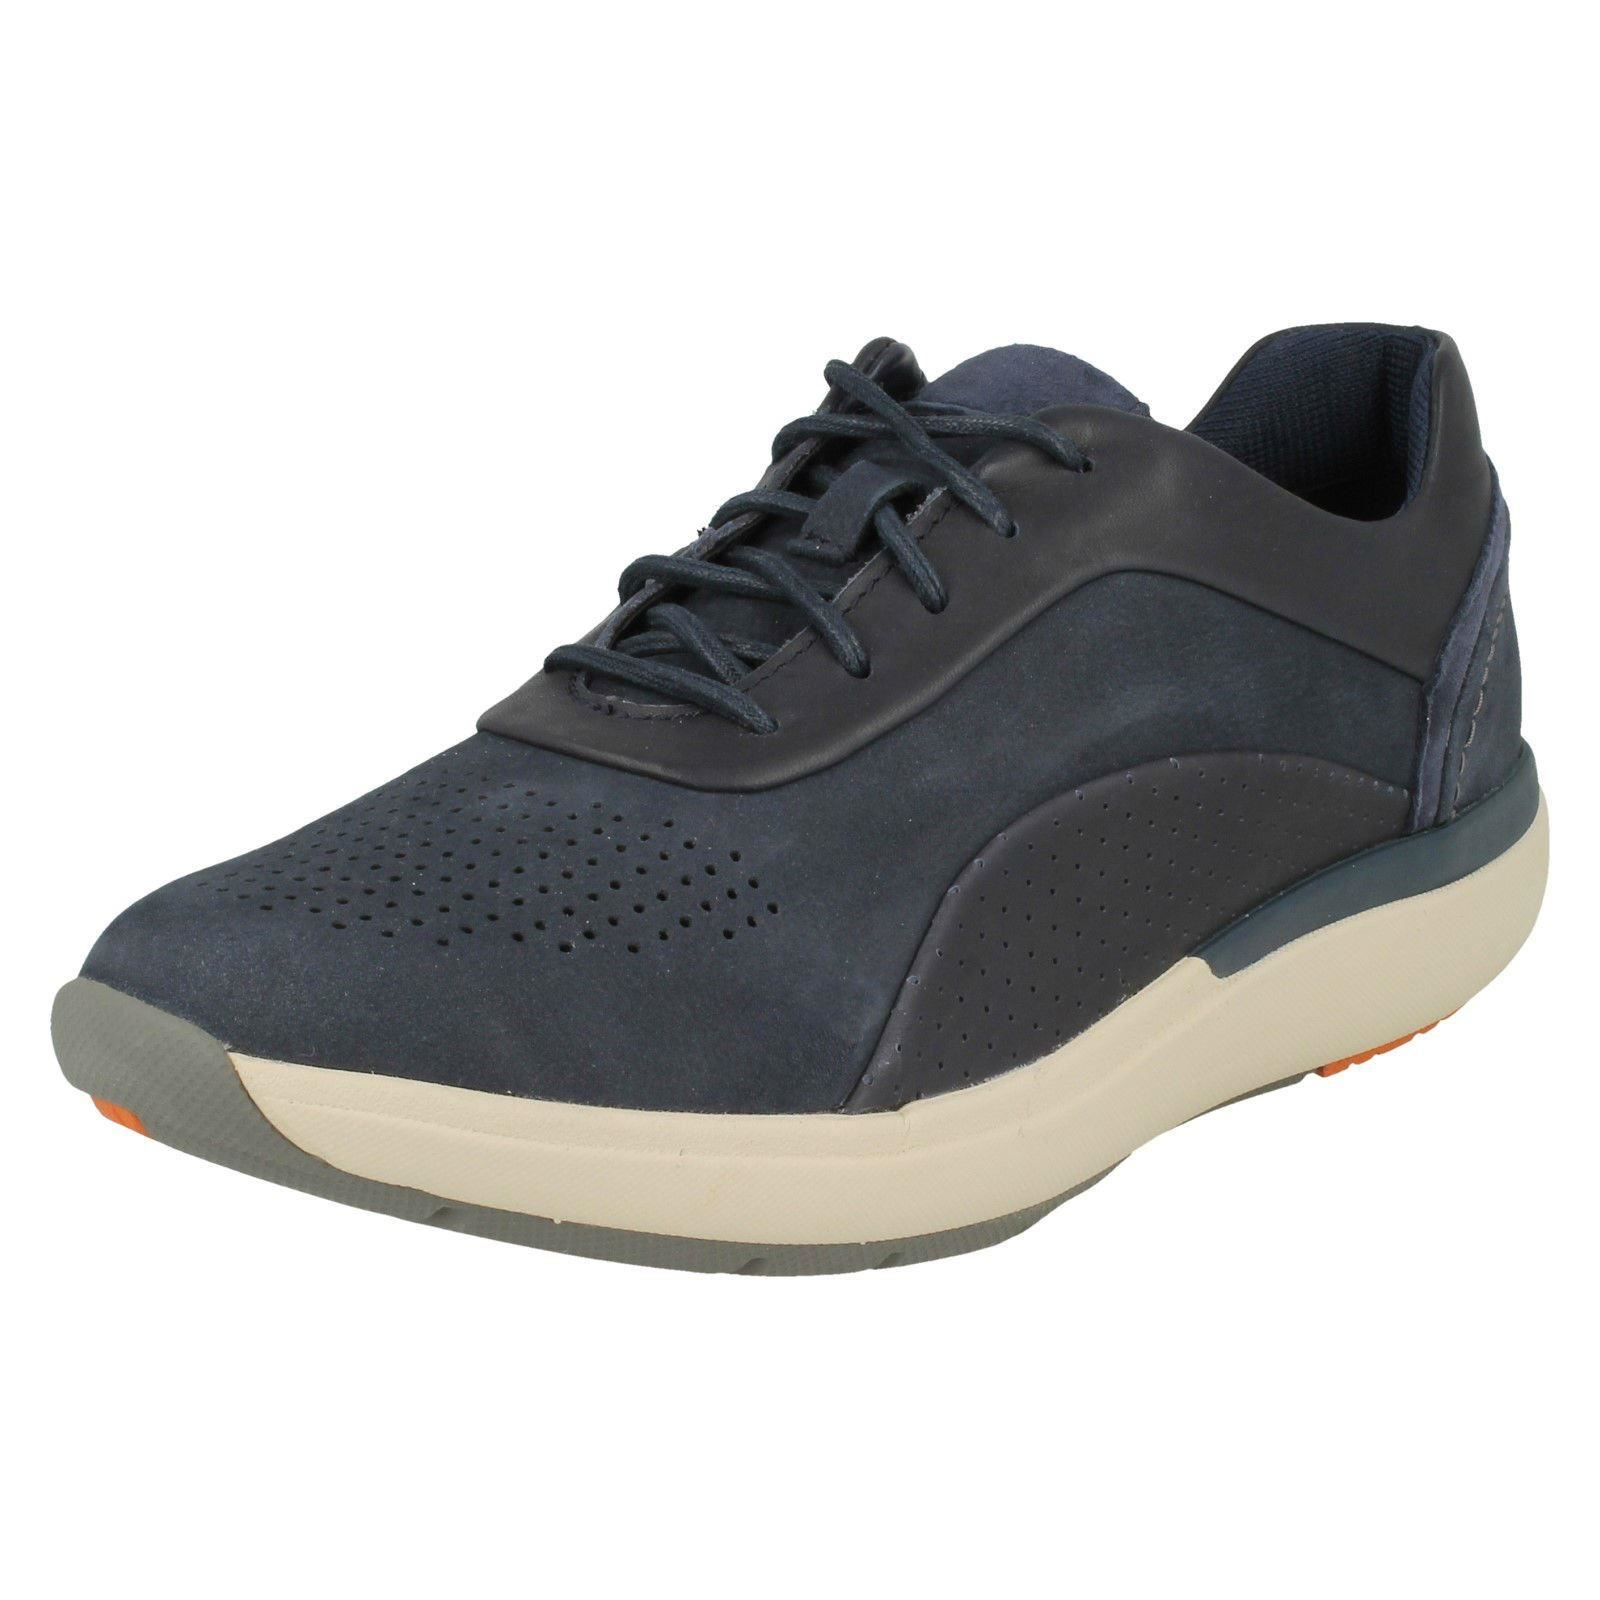 Clarks Unstructured CRUISE LACE - Trainers - navy KvvJqK2dMf